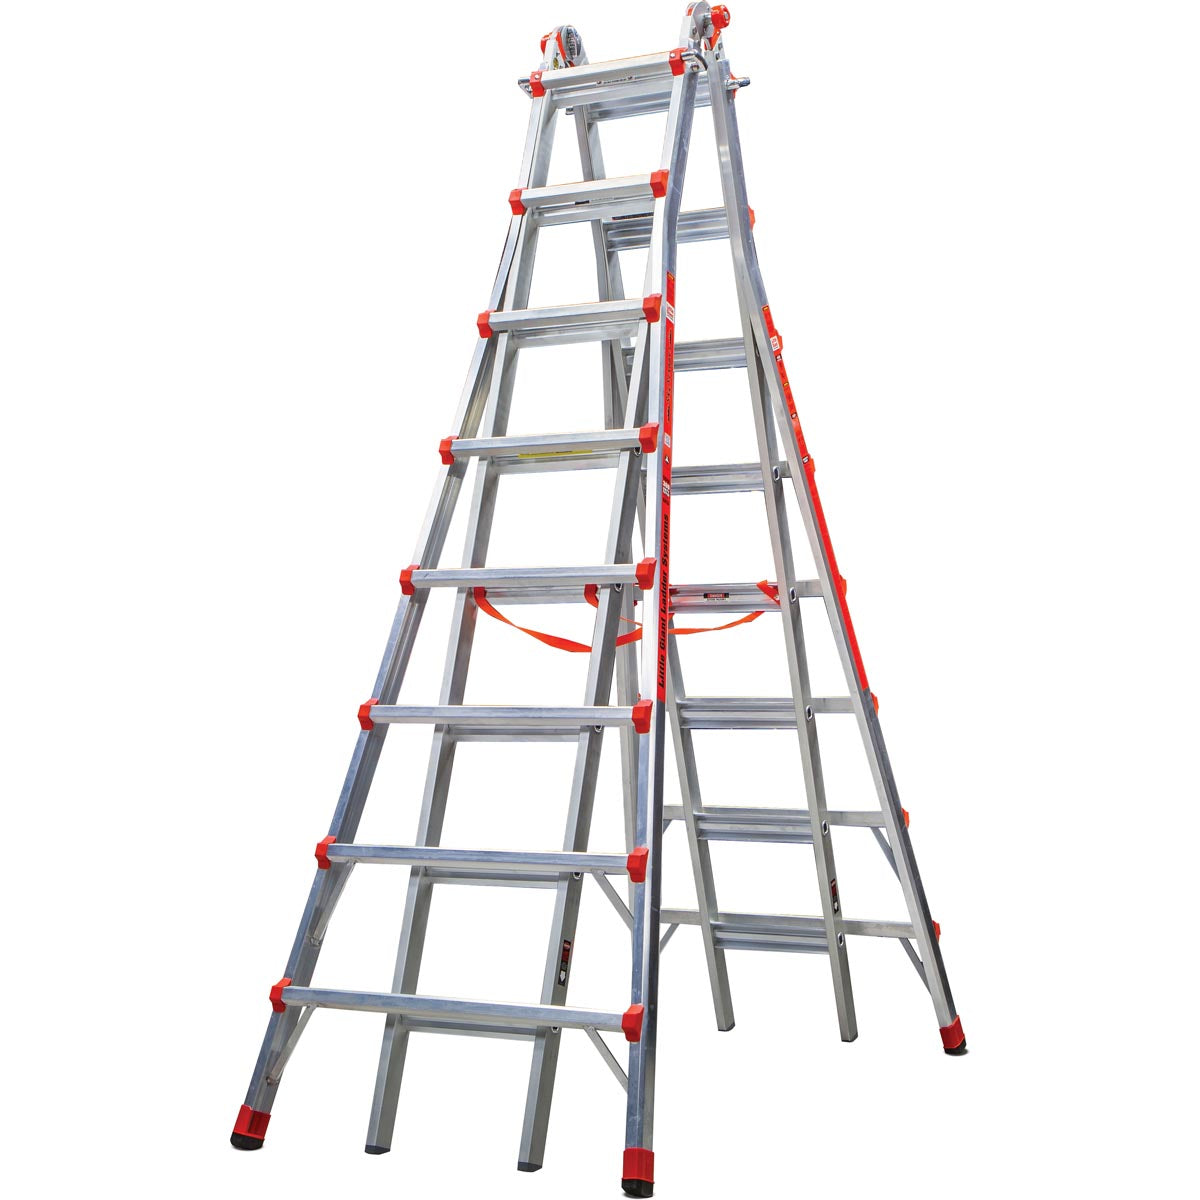 Little Giant Skyscraper Ladder Type 1a Skyscraper Mxz